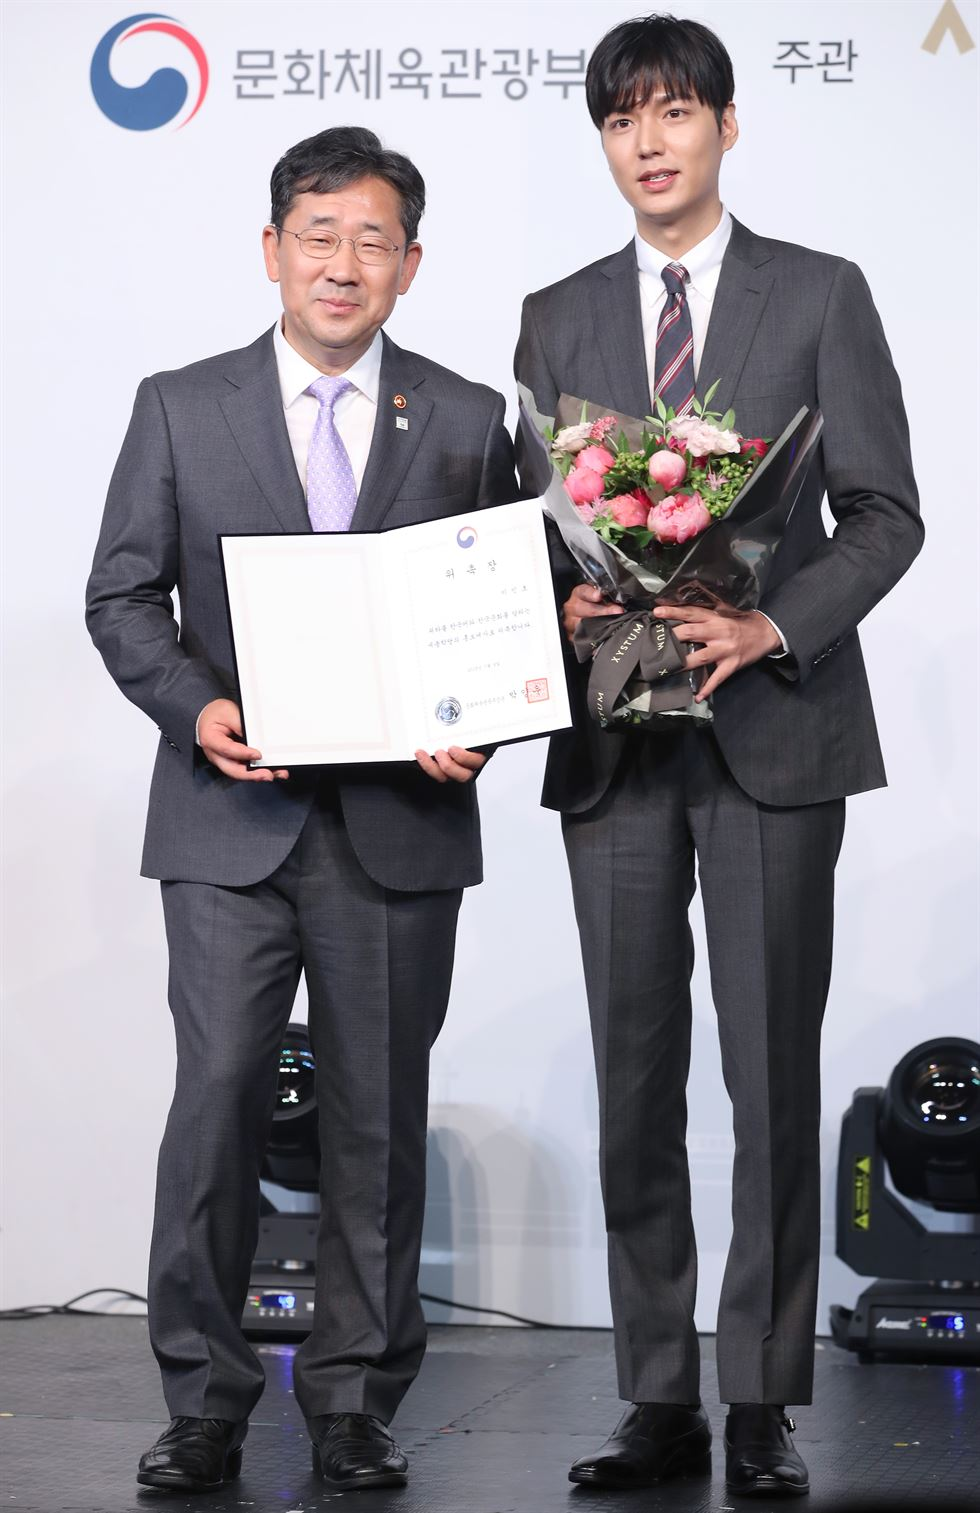 Actor Lee Min-ho, right, and Minister of Culture, Sports and Tourism Park Yang-woo hold a cardboard certificate appointing Lee as PR ambassador for the state-run King Sejong Institute at the Plaza Hotel in Seoul, Tuesday. The institute, under the ministry's control, offers Korean language and cultural education programs for foreigners interested in the country. As of June this year, the institute had 180 offices in 60 countries, teaching nearly 60,000 foreigners each year. Yonhap